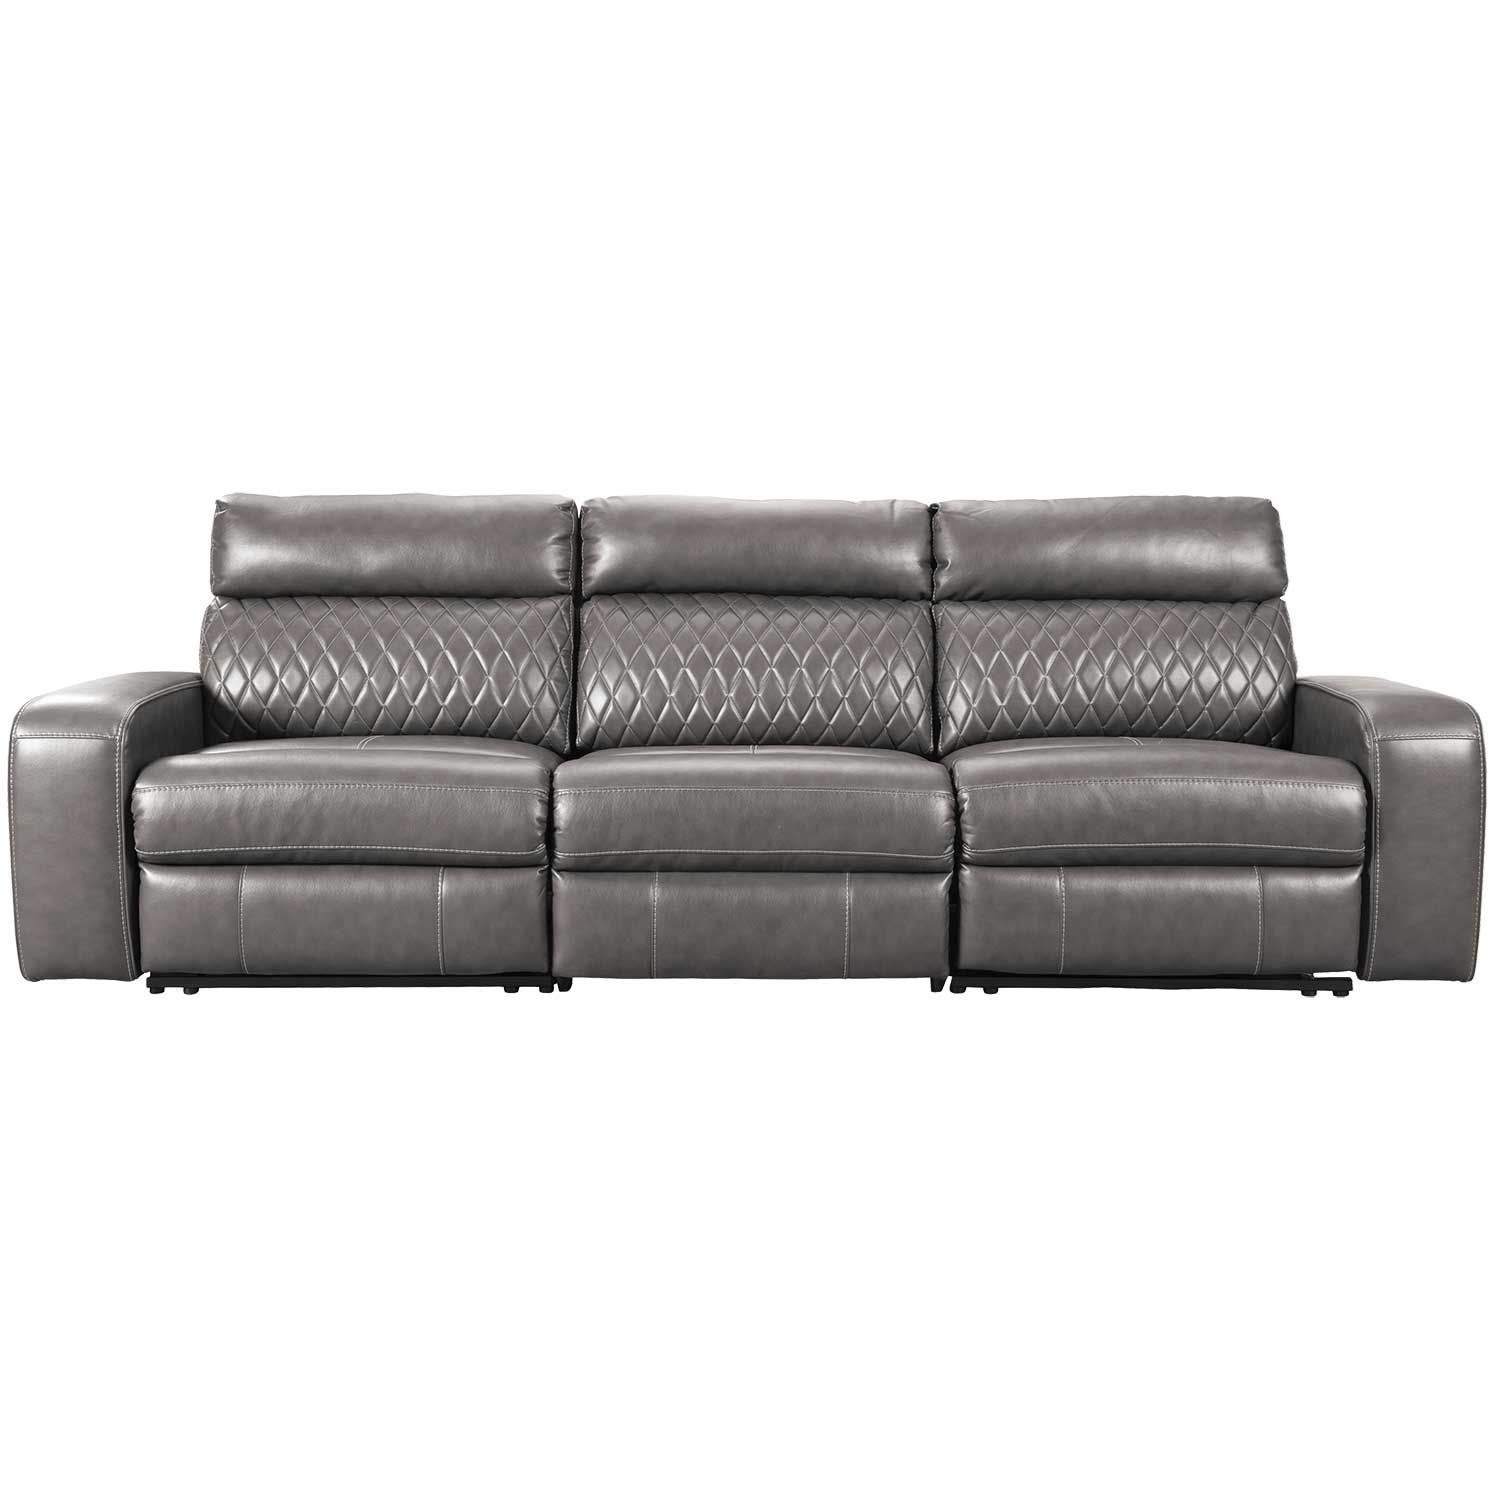 Picture of Samperstone Power Reclining Sofa Sectional